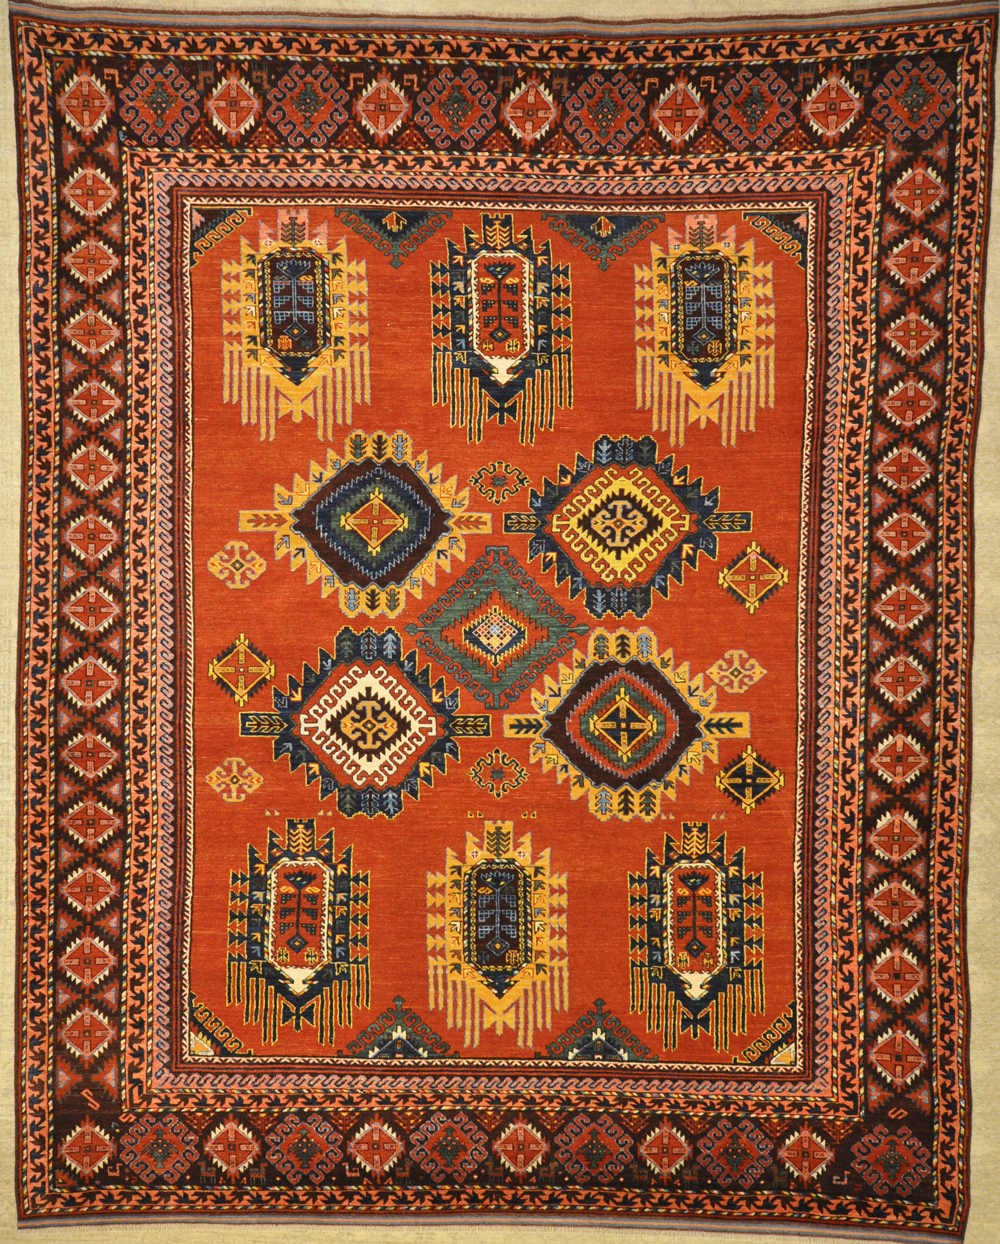 Finest Baluchi Tribal Rugs and more oriental carpet 46862-